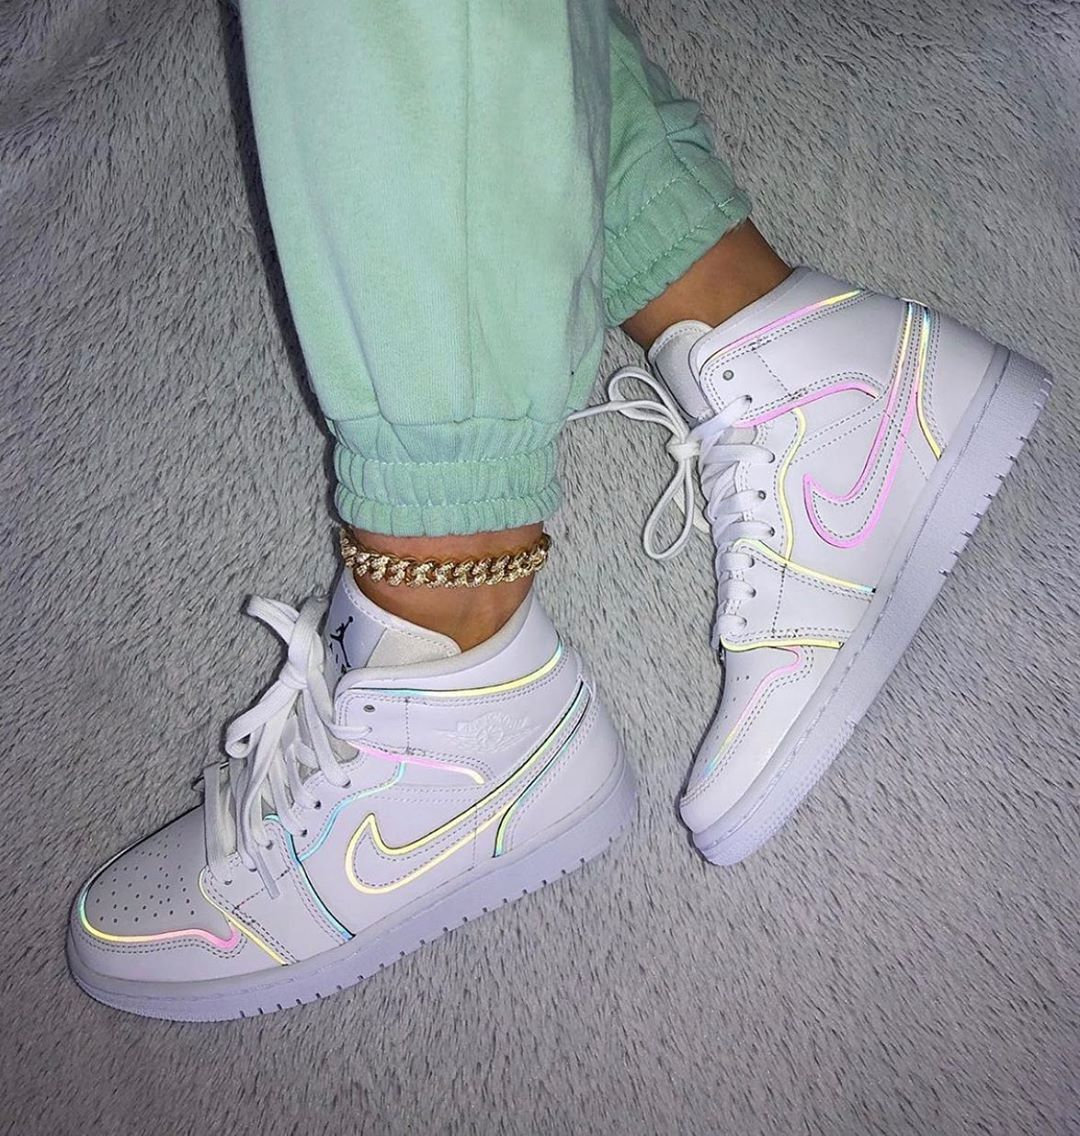 "par seguro Es barato  90s BABY VINTAGE on Instagram: ""Yay or nay? ✨"" 